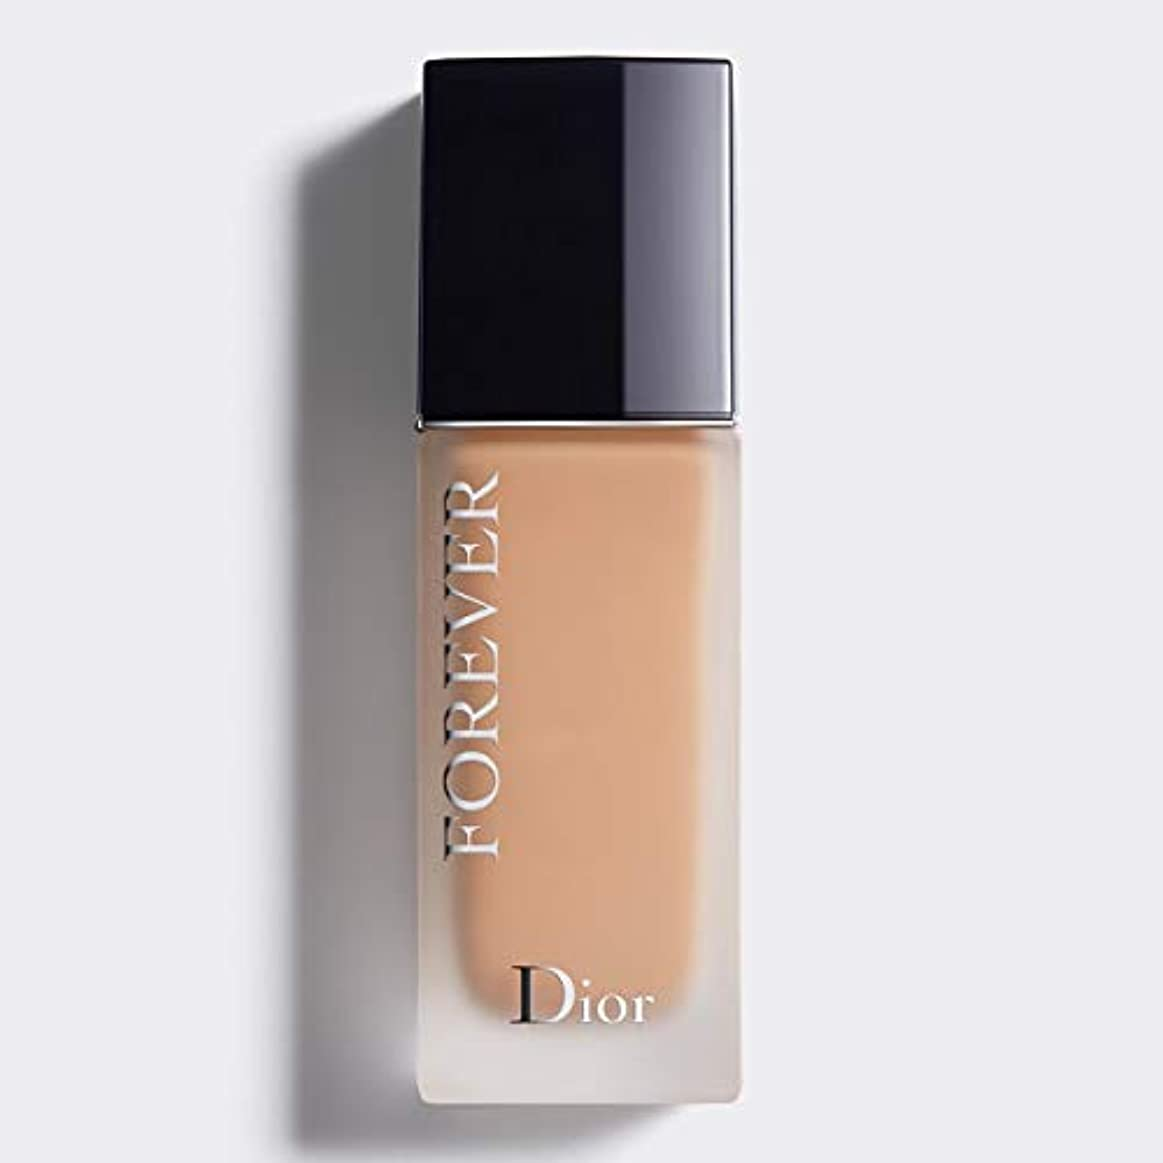 雑草やる不幸クリスチャンディオール Dior Forever 24H Wear High Perfection Foundation SPF 35 - # 3.5N (Neutral) 30ml/1oz並行輸入品